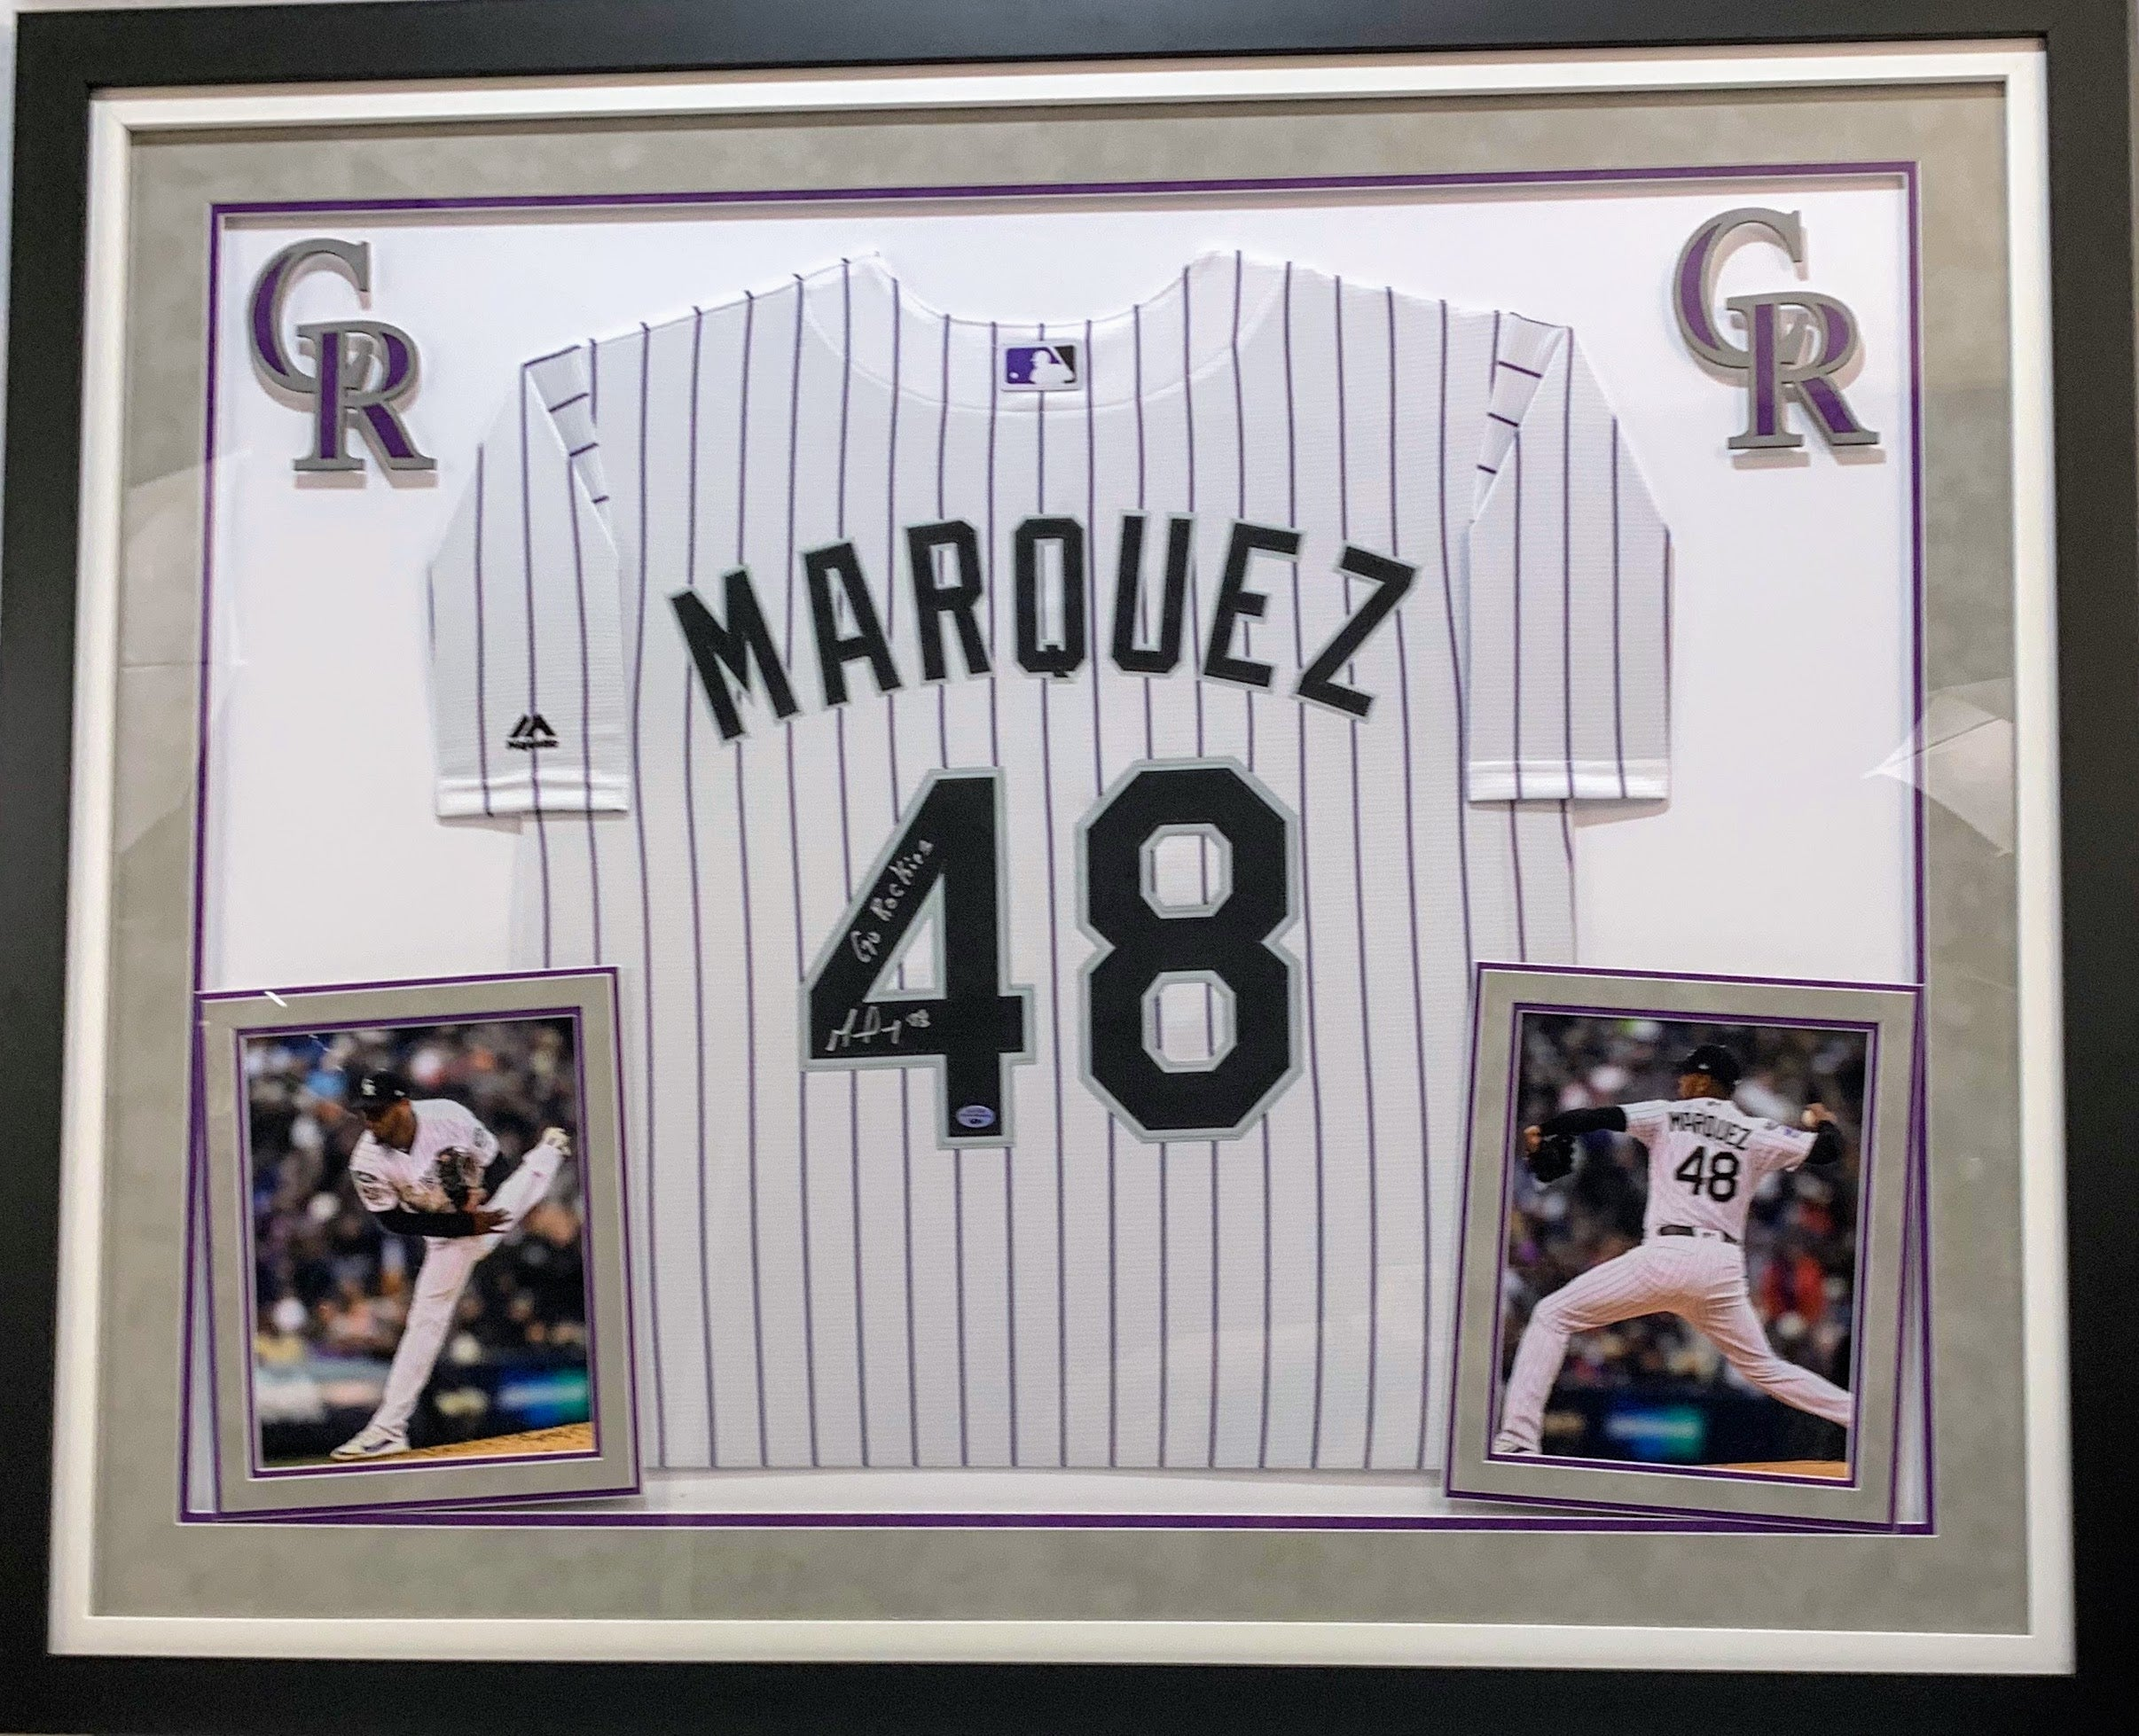 German Marquez Deluxe Framed Rockies White Replica Jersey - Latitude Sports Marketing